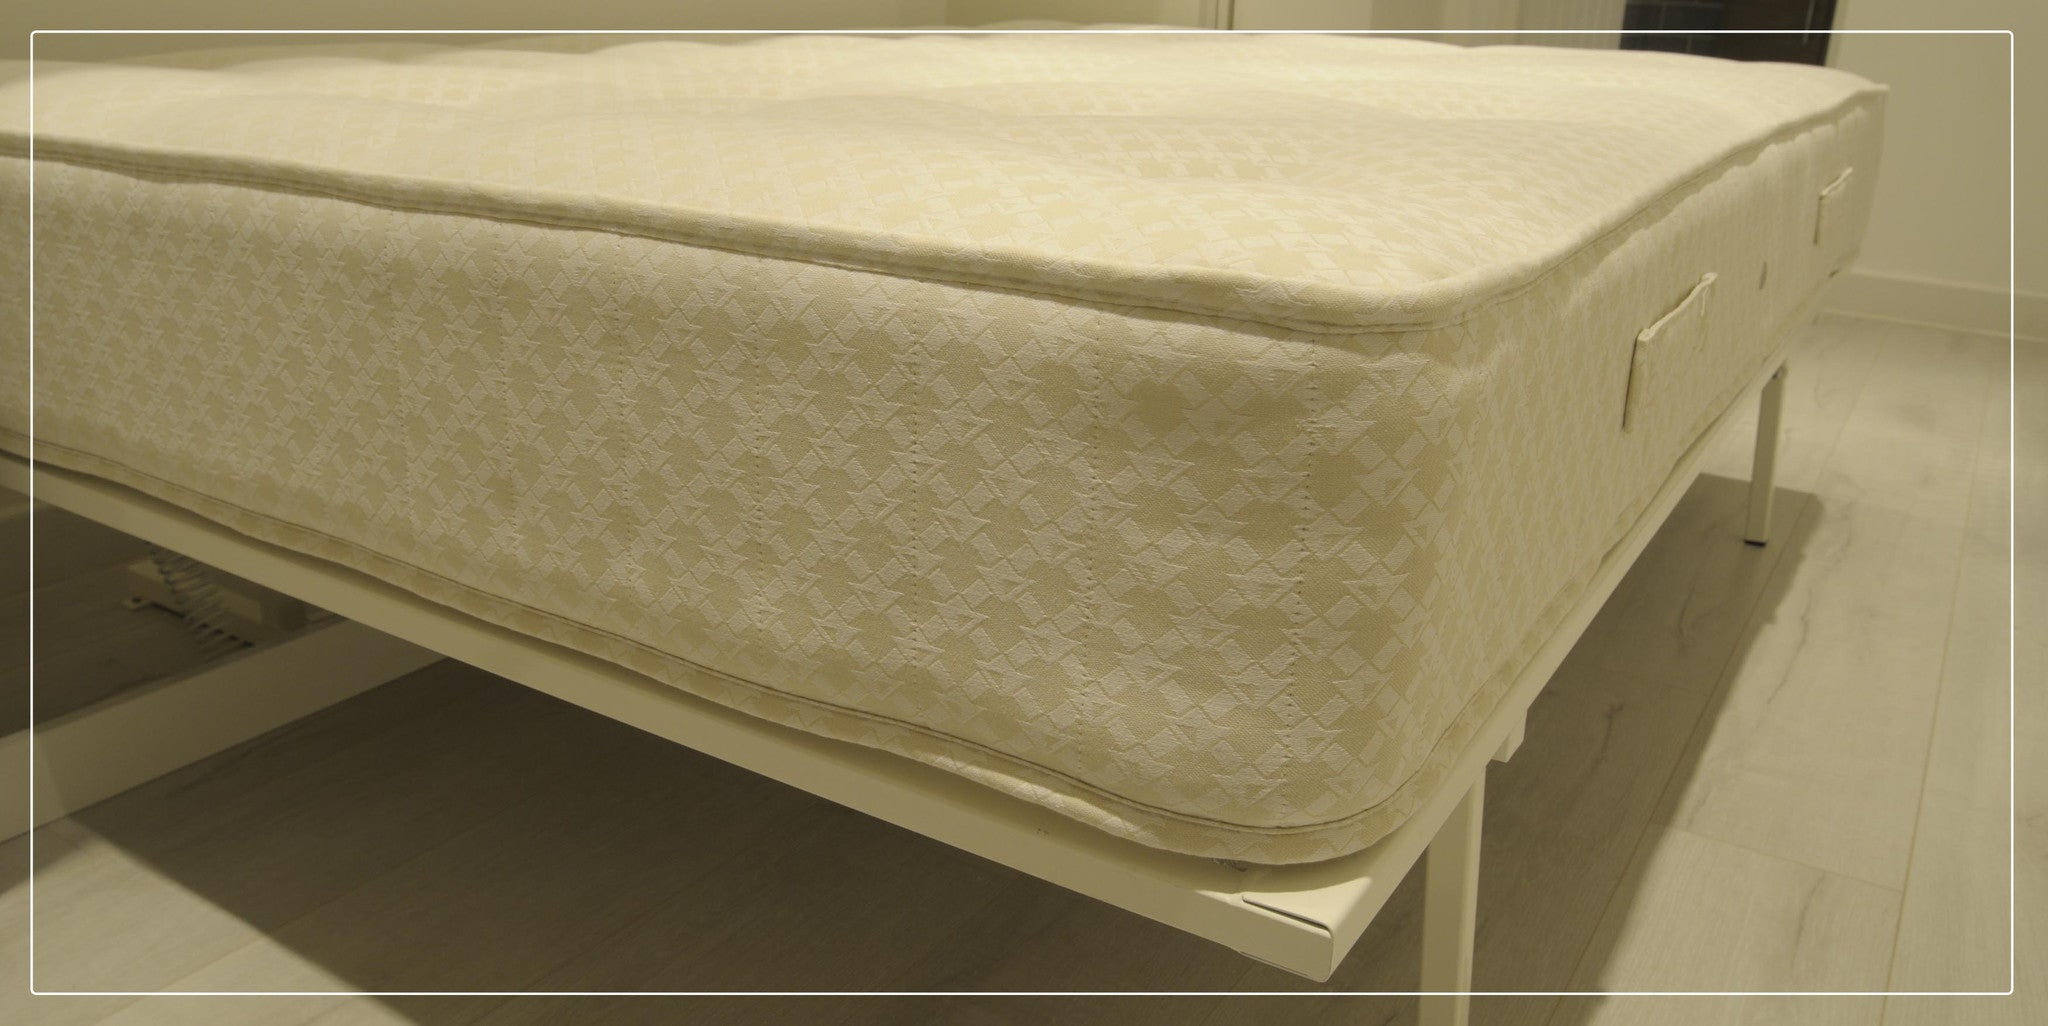 Wall bed high quality mattresses wall beds direct uk click the image below to enlarge luxury wall bed hotel quality interior sprung mattresses amipublicfo Choice Image